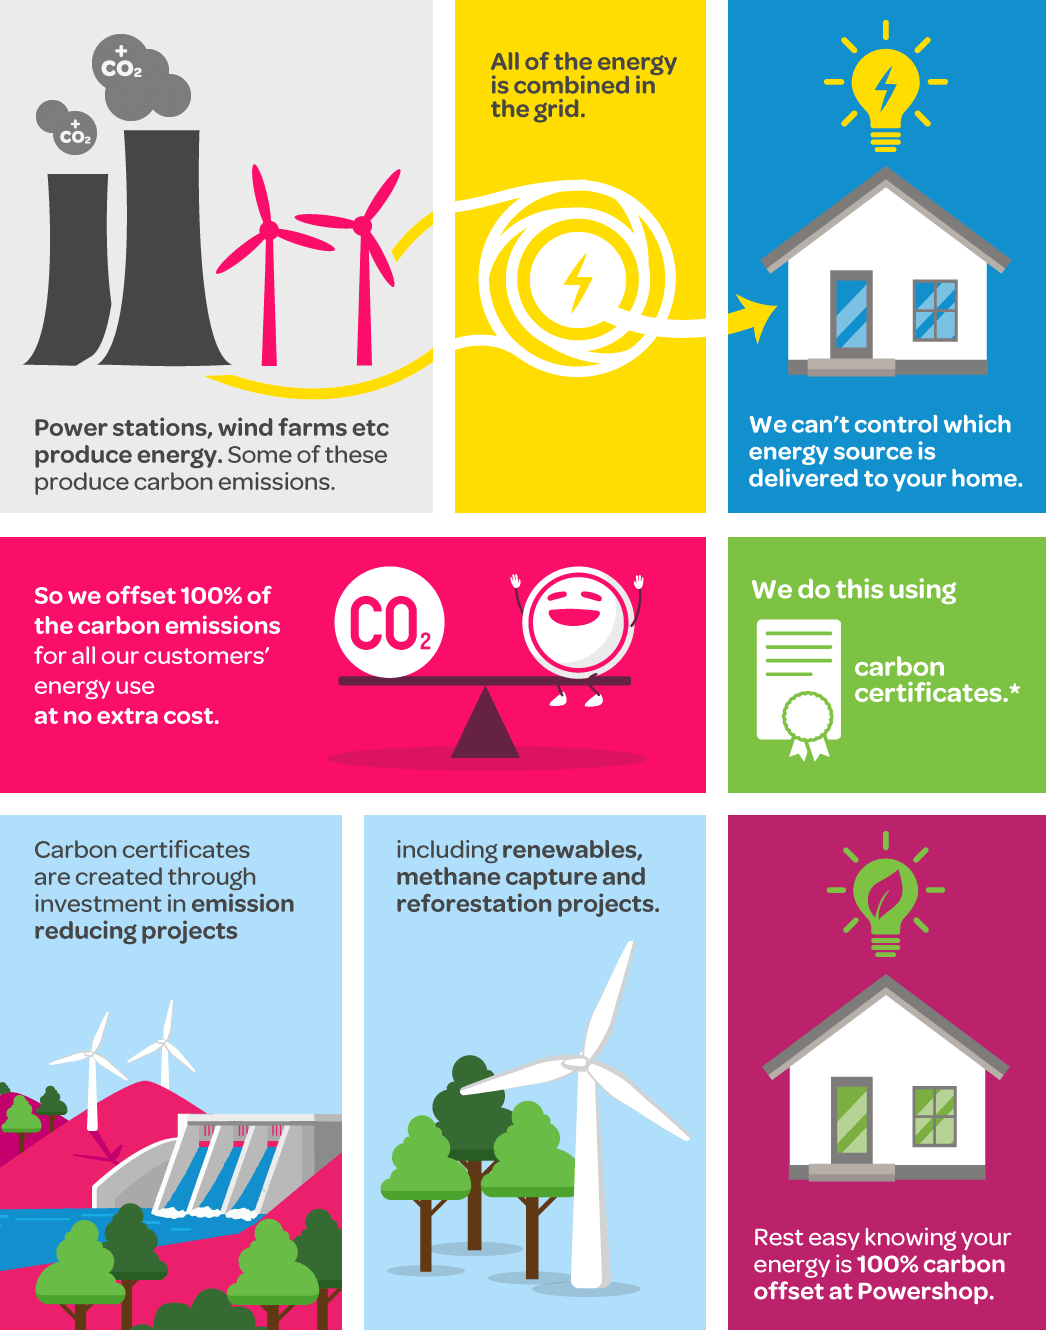 Illustration of Powershop's carbon offset process to explain how we are carbon neutral energy providers